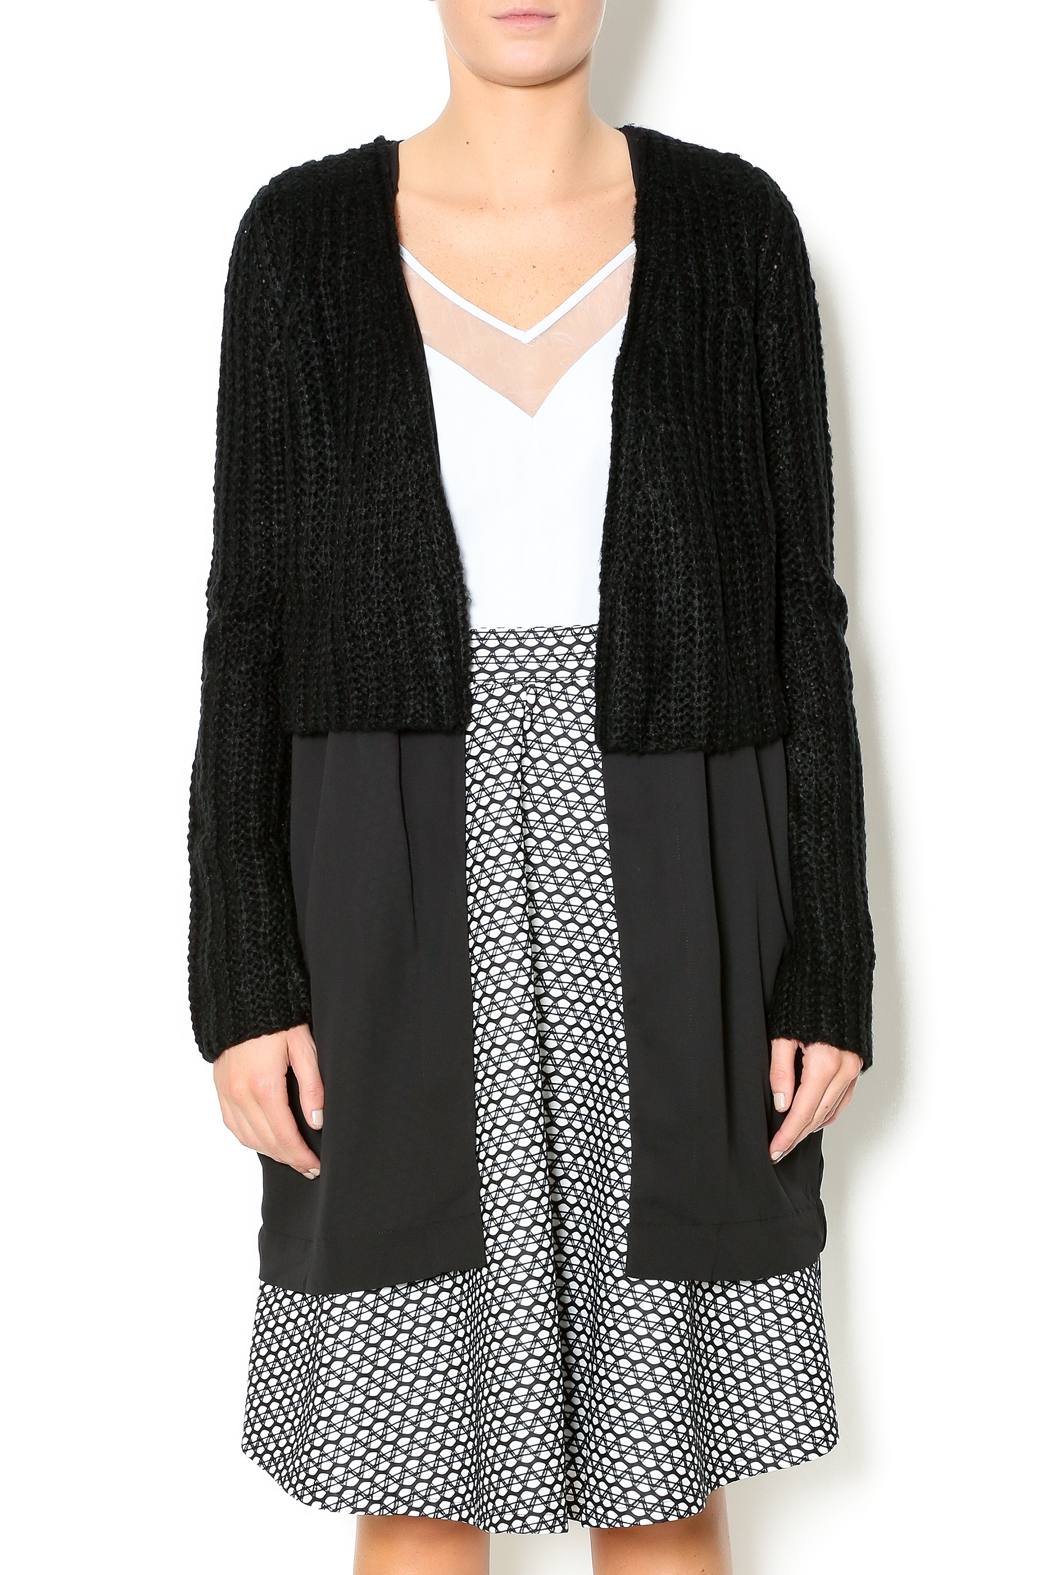 Do & Be Knit Chiffon Cardigan from Chicago by Bella Donna — Shoptiques